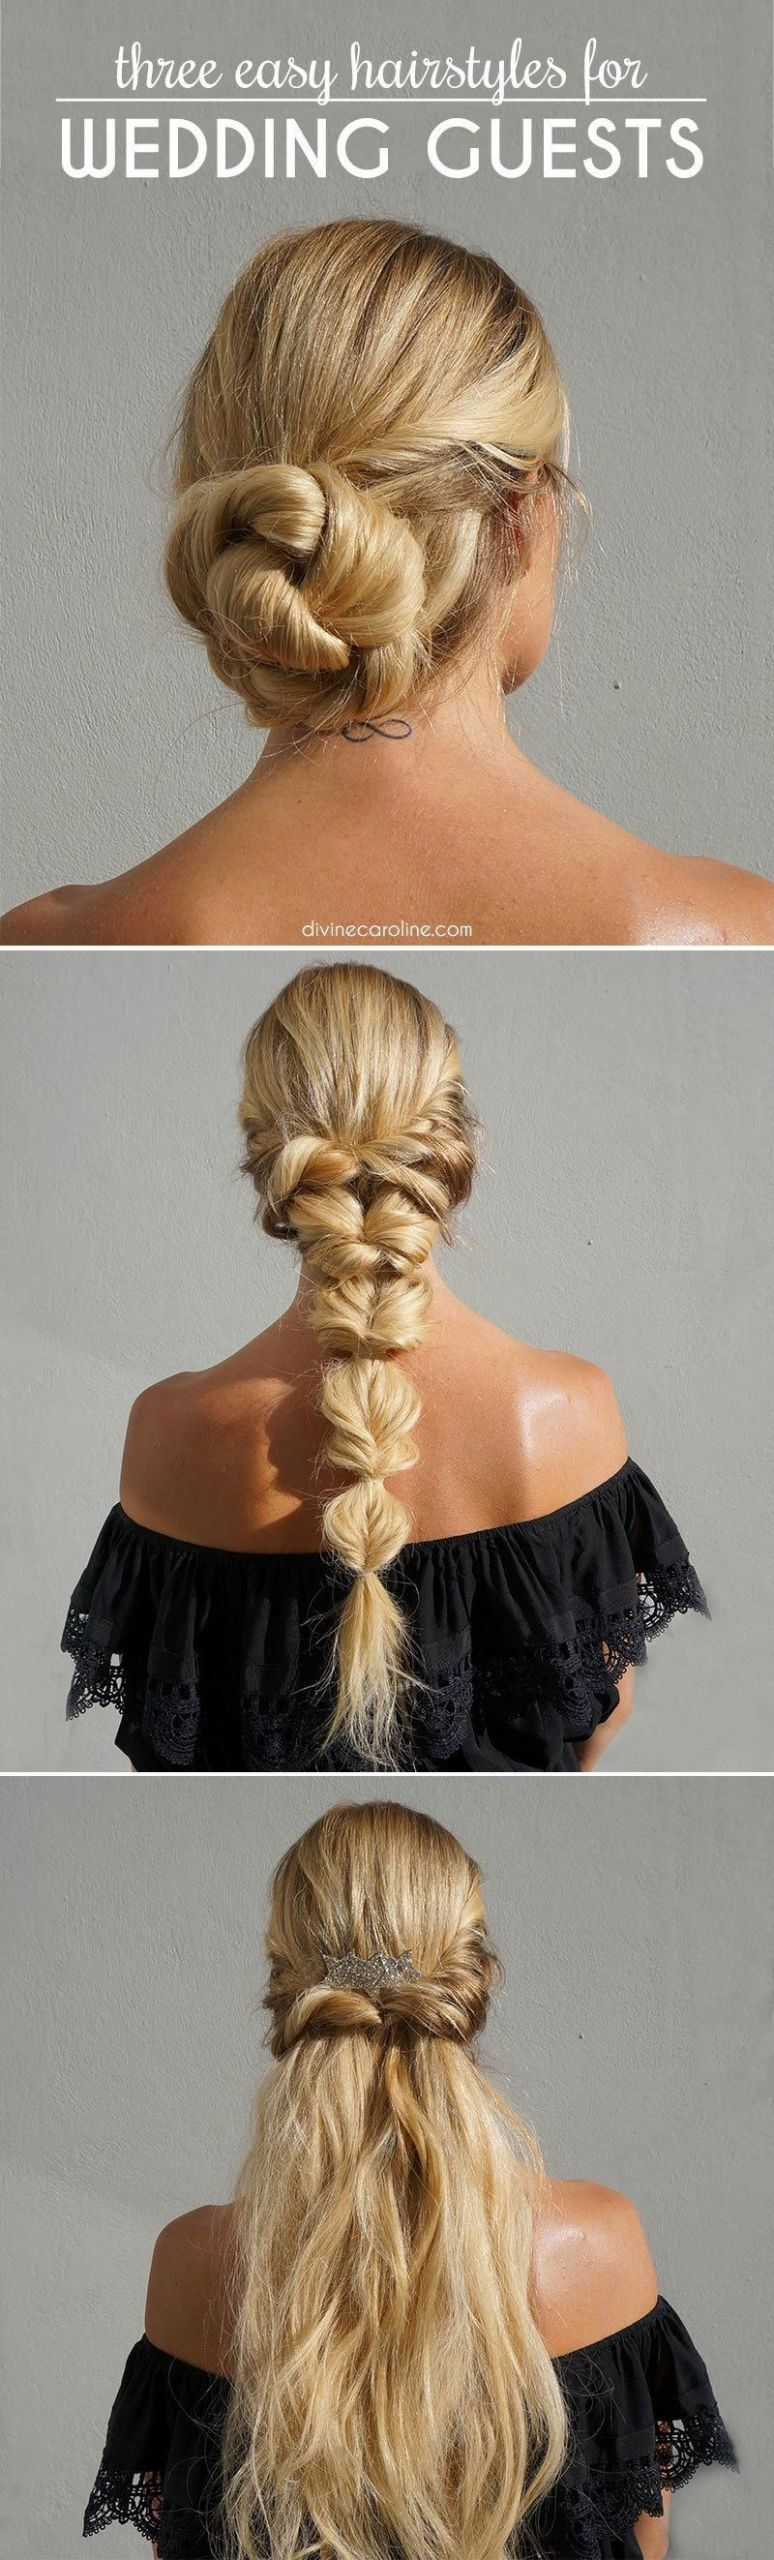 Wedding Guest Hairstyles DIY  3 Easy Hairstyles for Wedding Guests